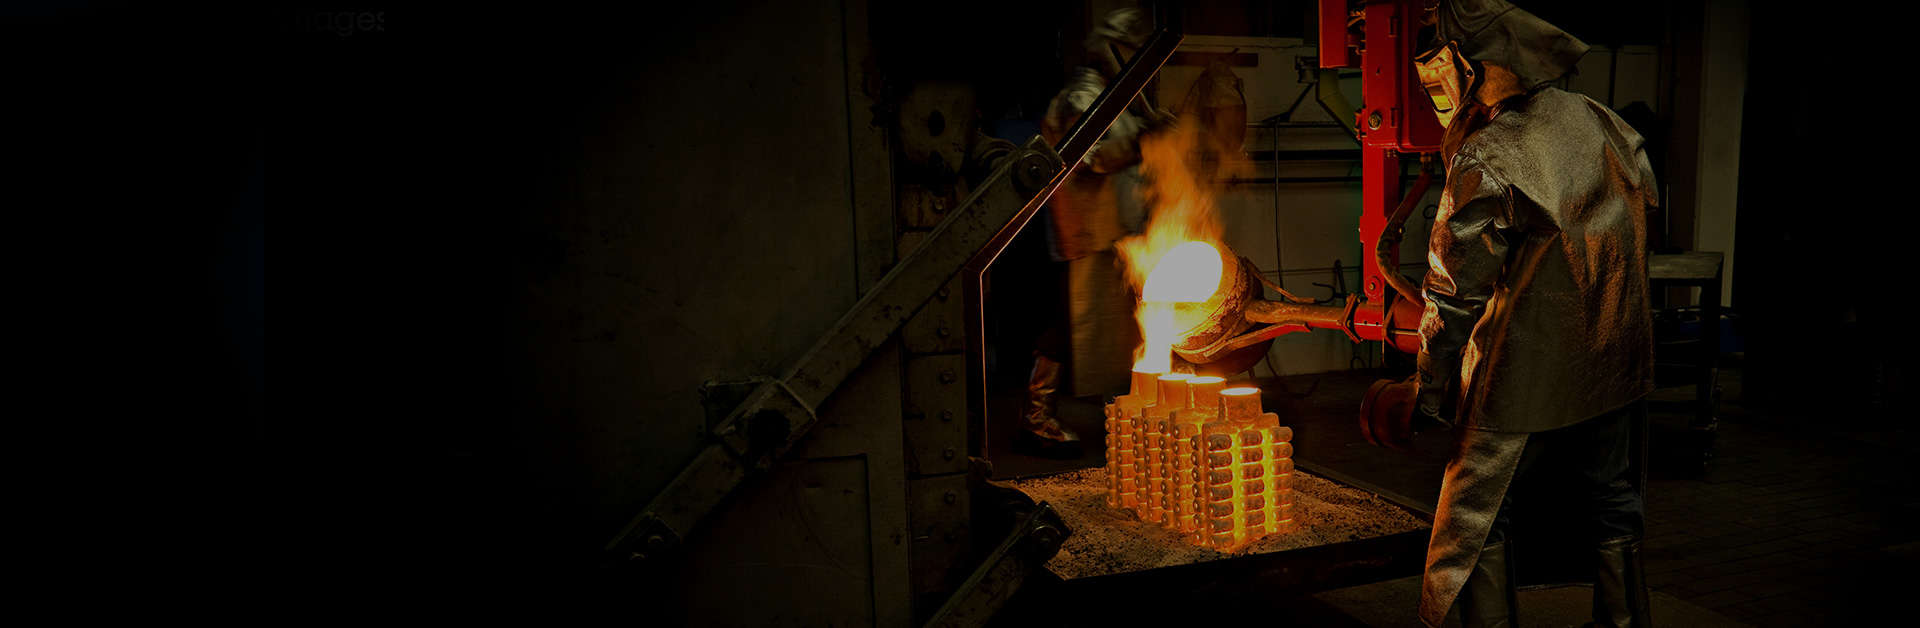 Richter Formteile - Image showing the process of investment casting